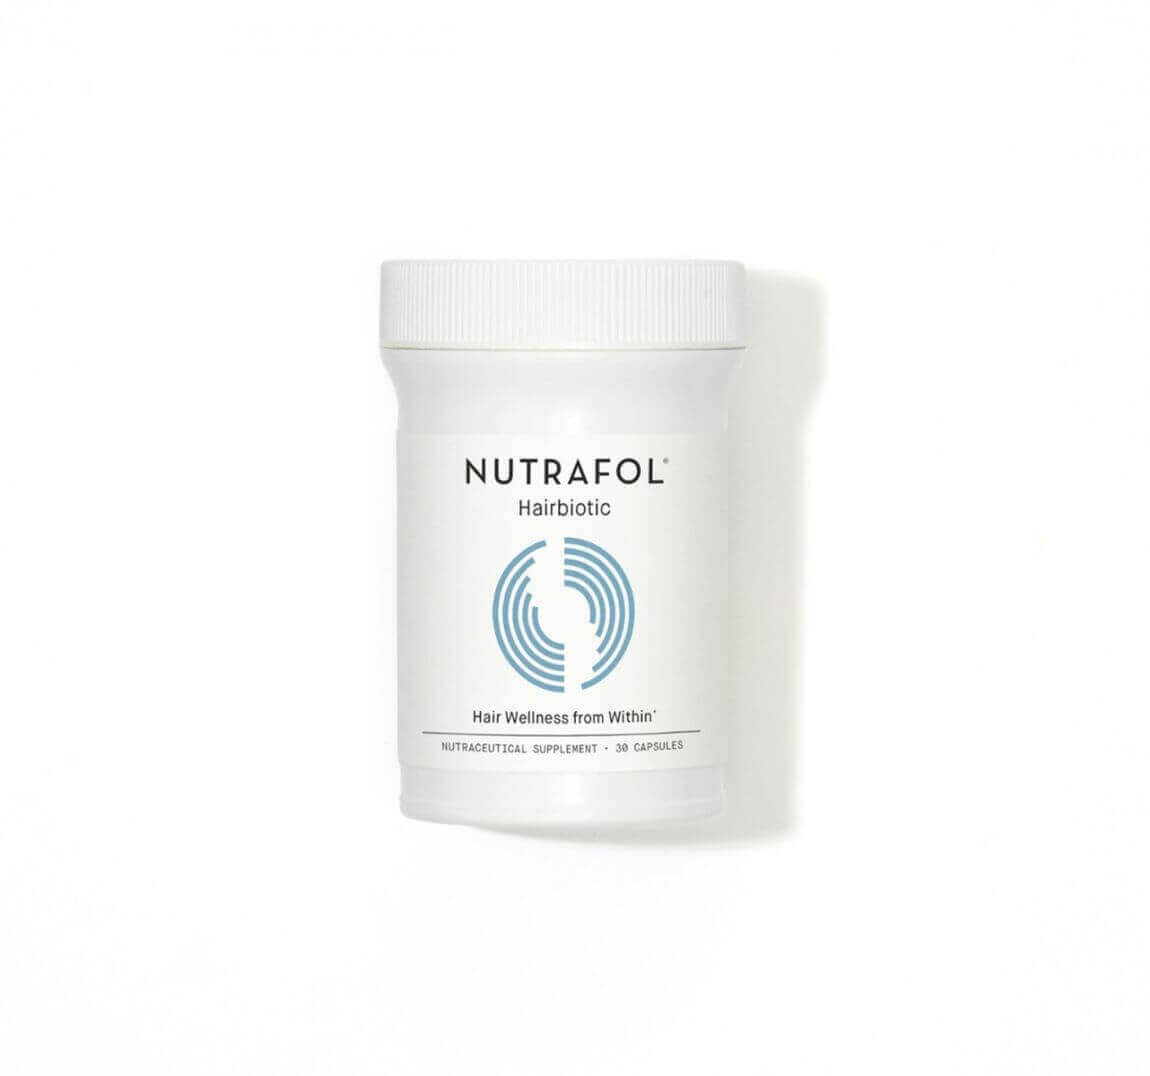 Nutrafol Hairbiotic Review